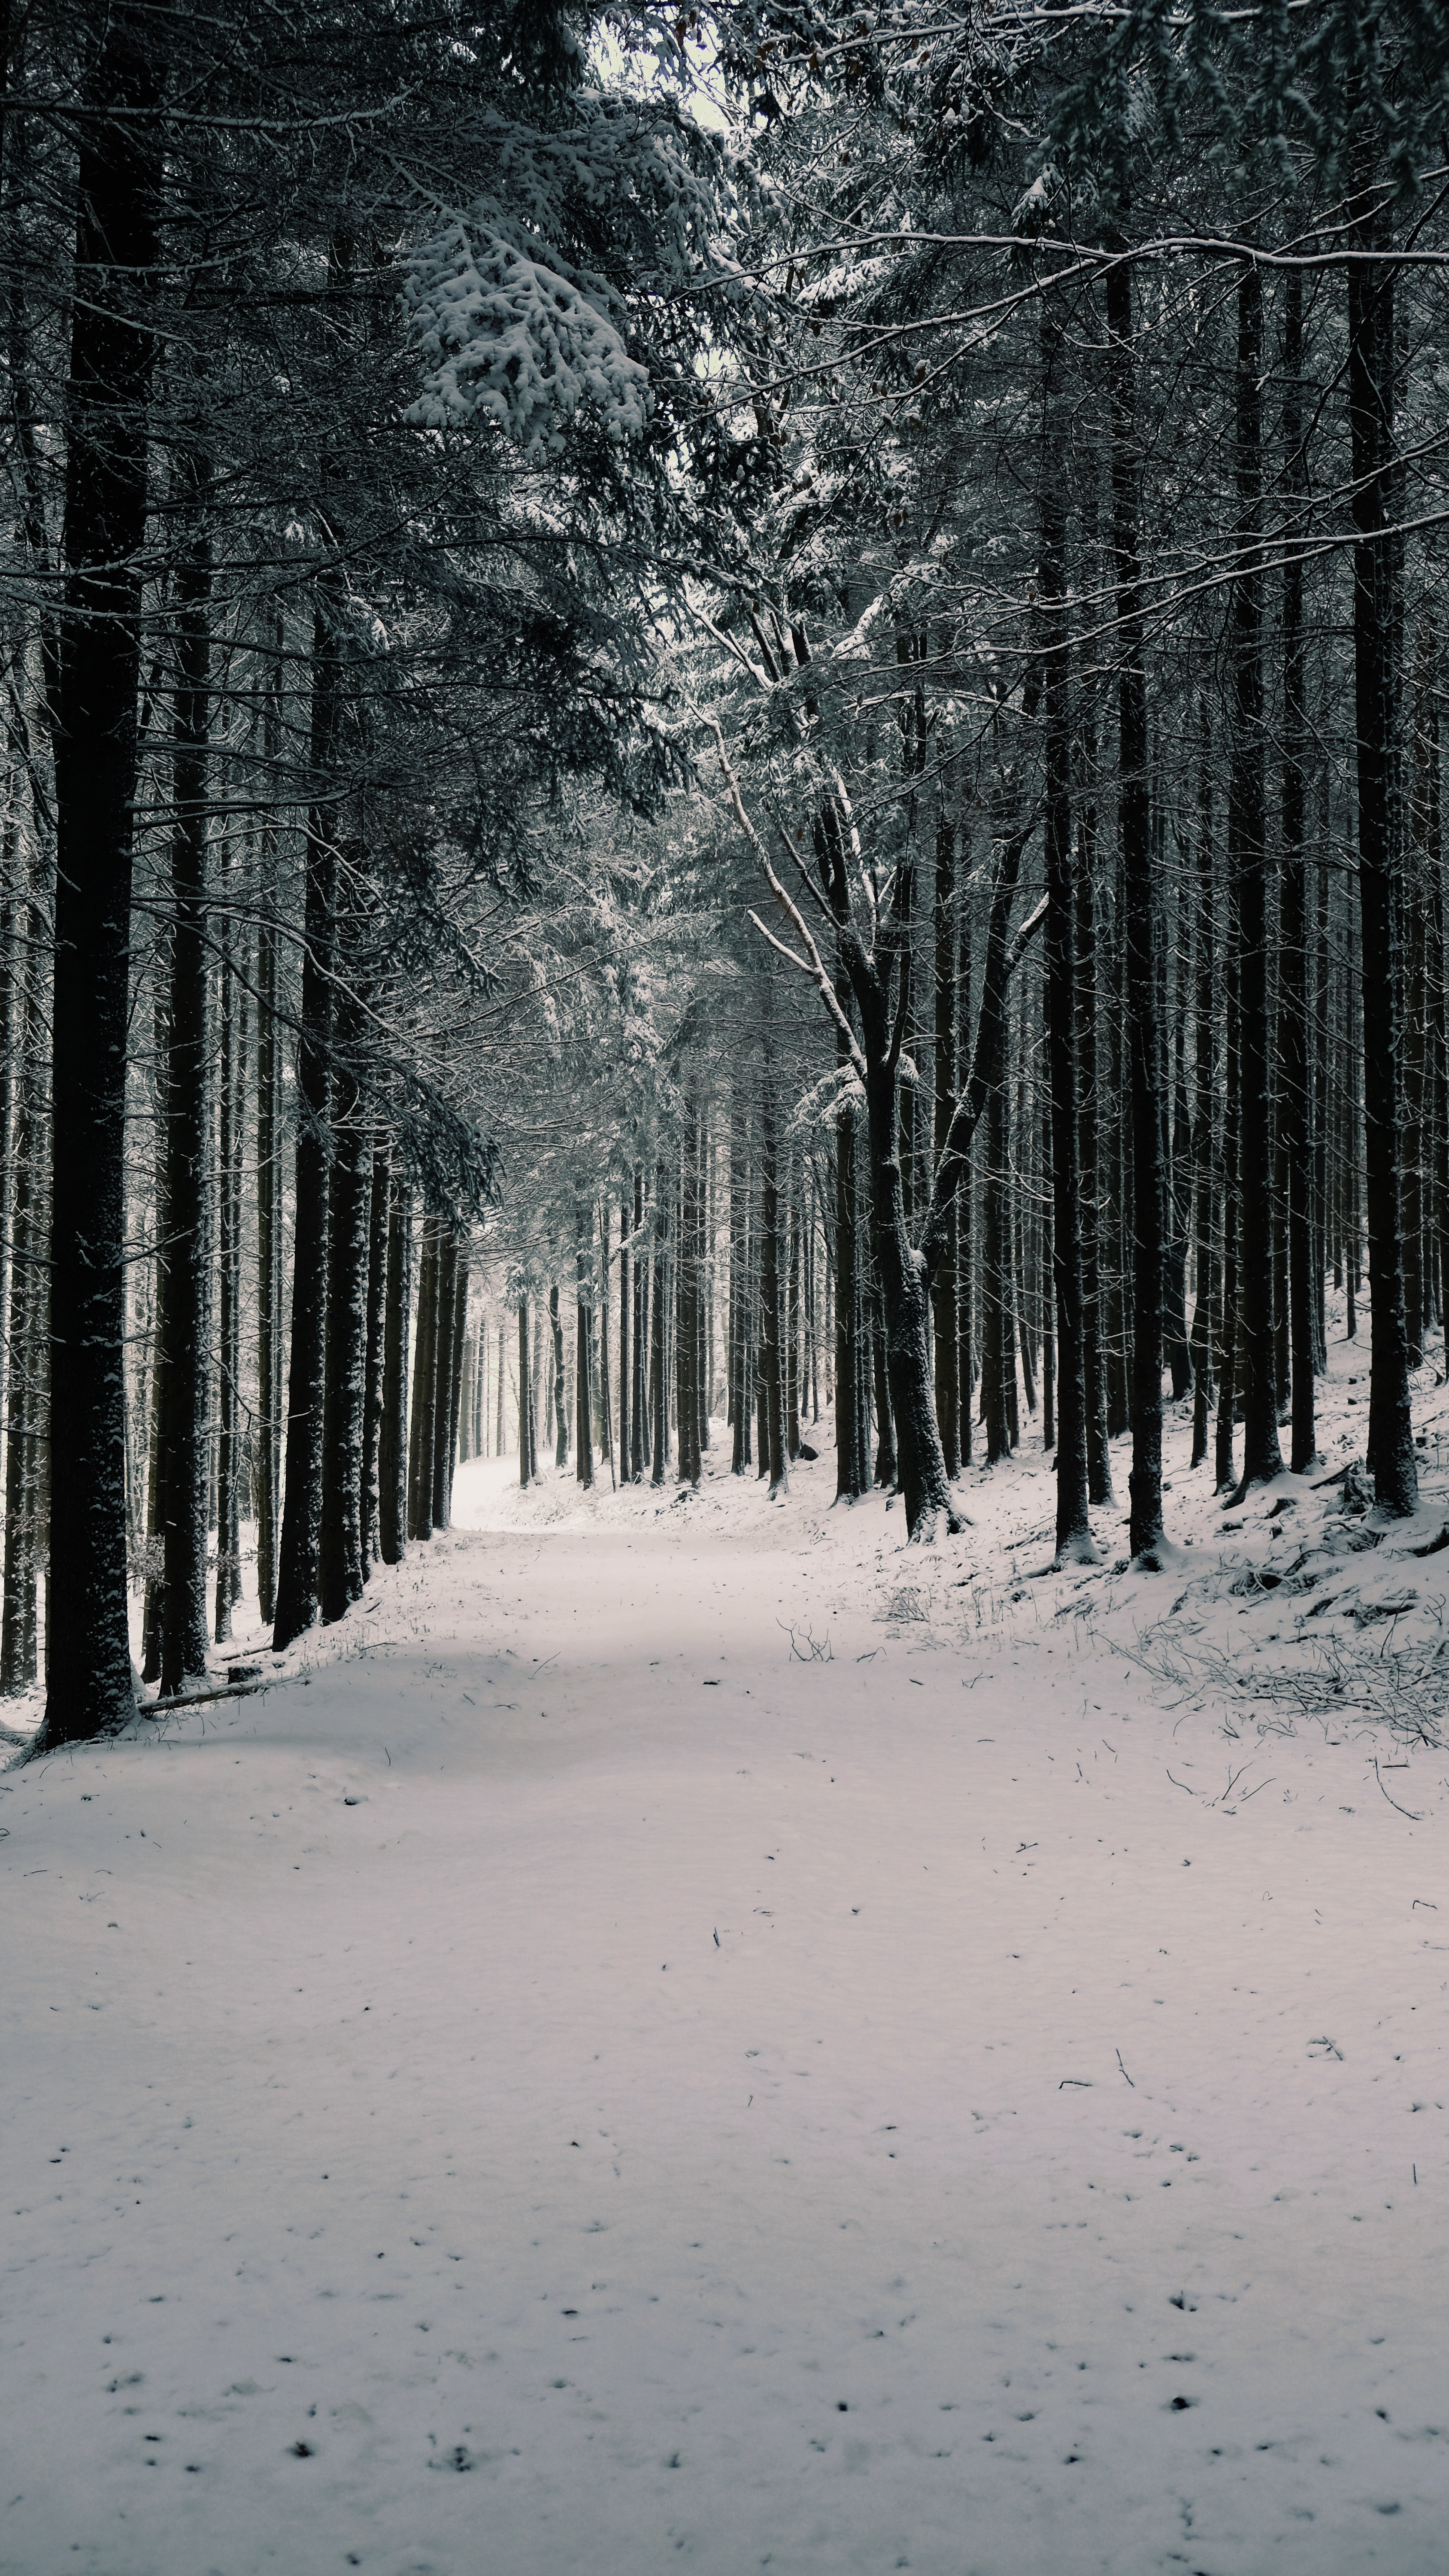 117796 download wallpaper Winter, Nature, Trees, Pine, Snow, Forest screensavers and pictures for free